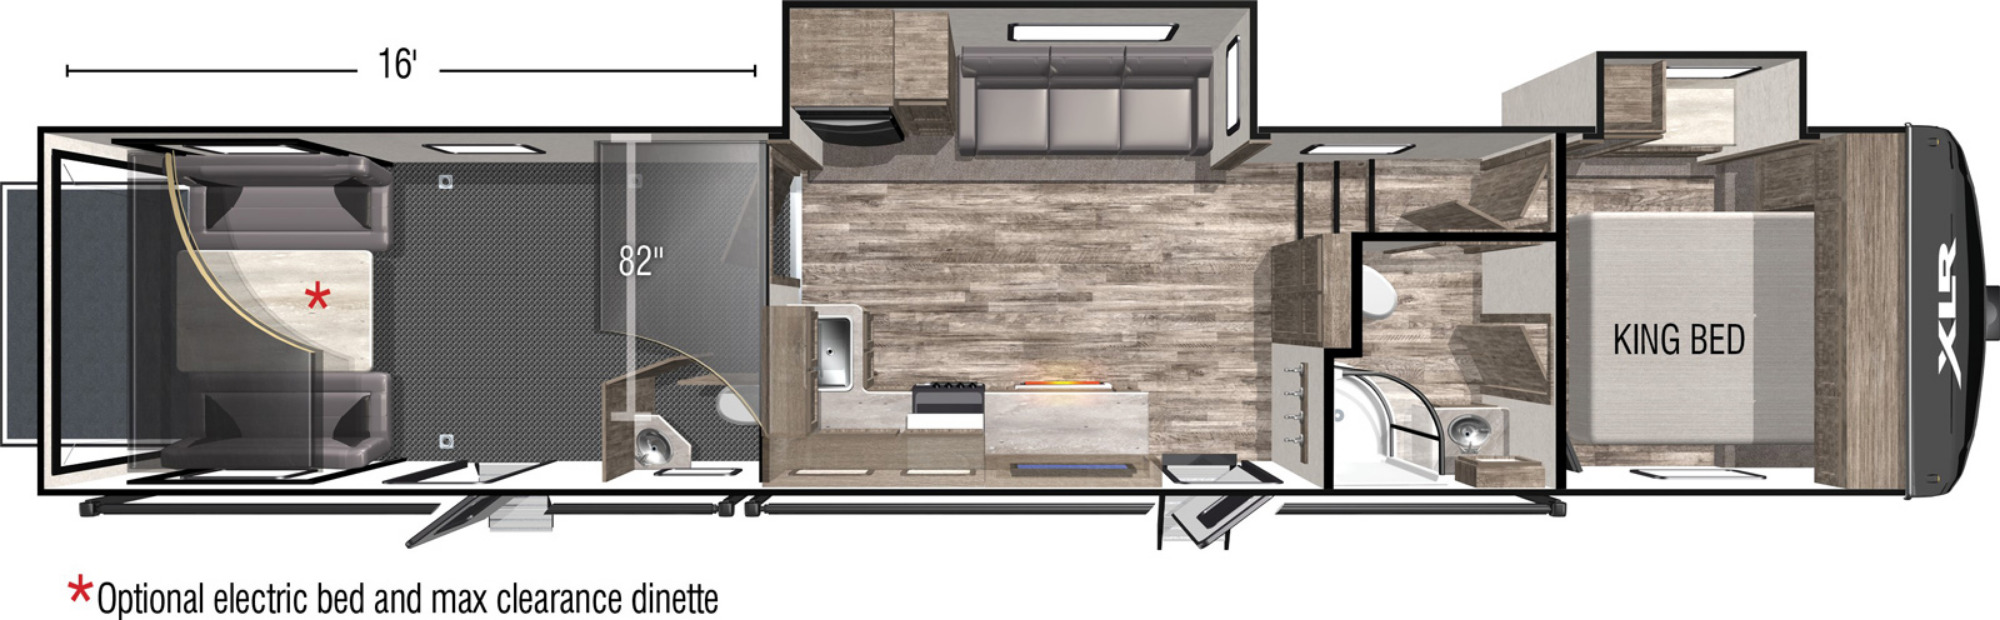 View Floor Plan for 2022 FOREST RIVER XLR BOOST 36TSX16